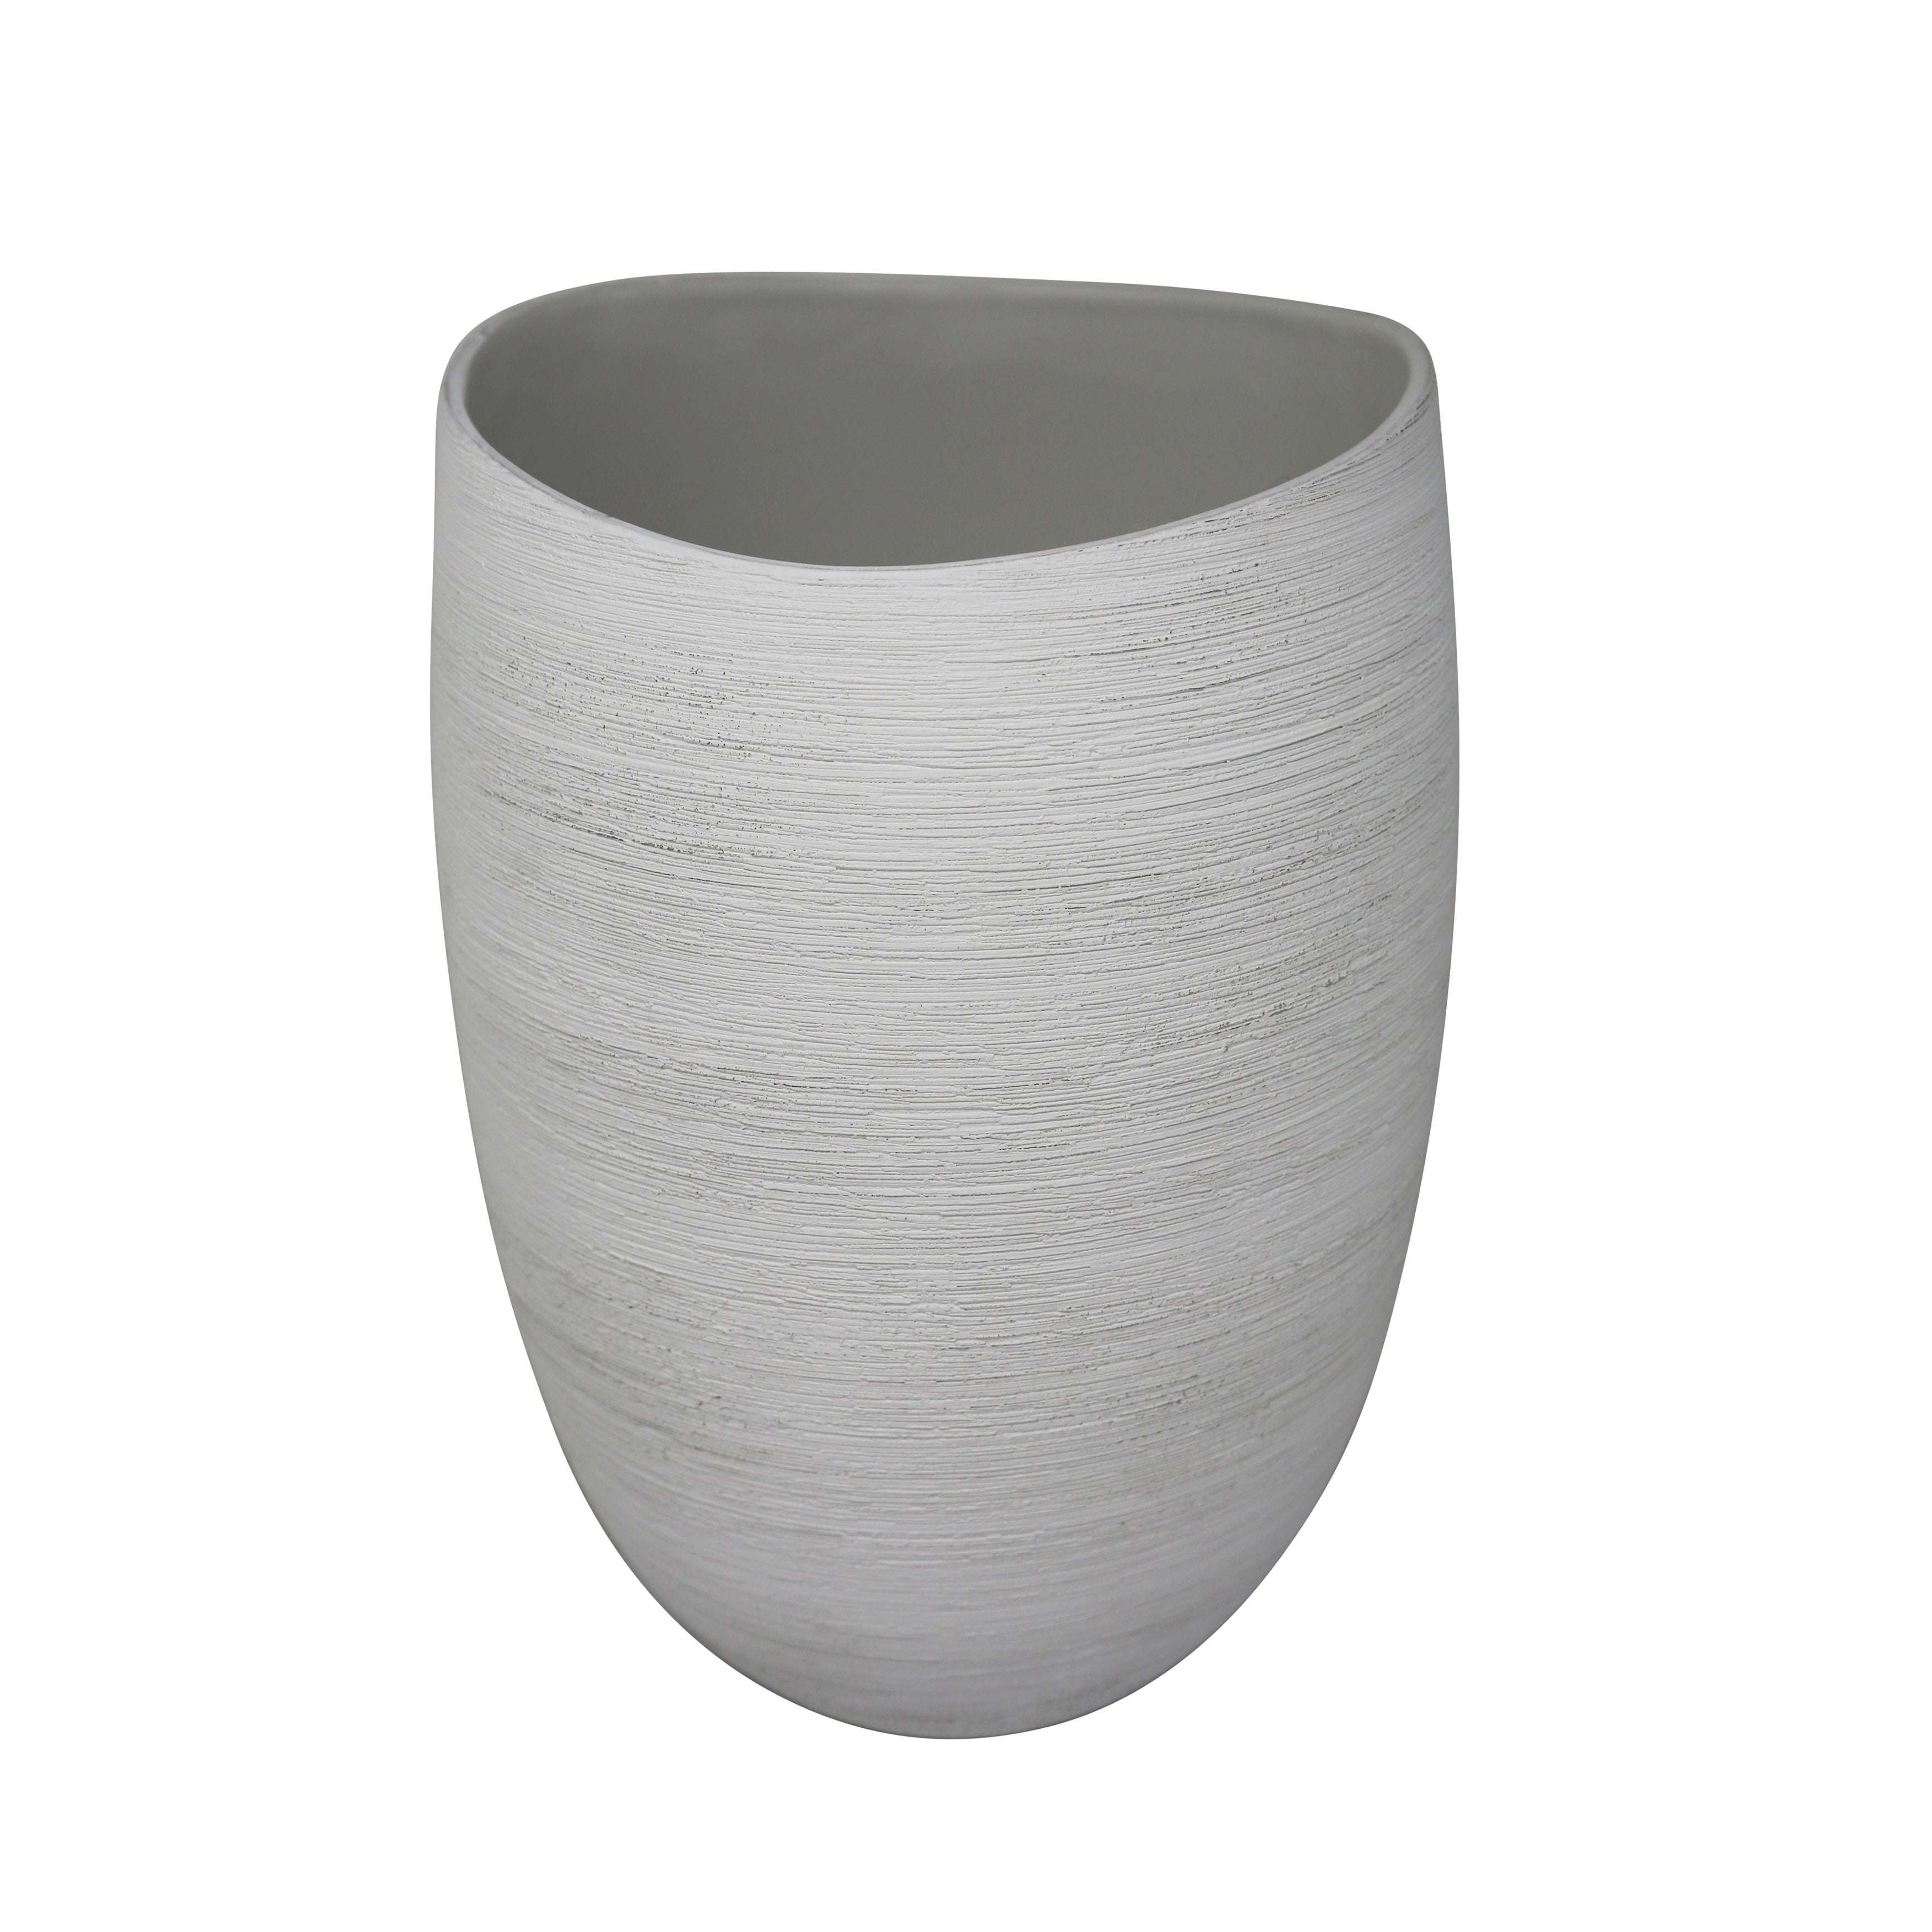 Ceramic Tapered Vase with Distressed Details, Large, White